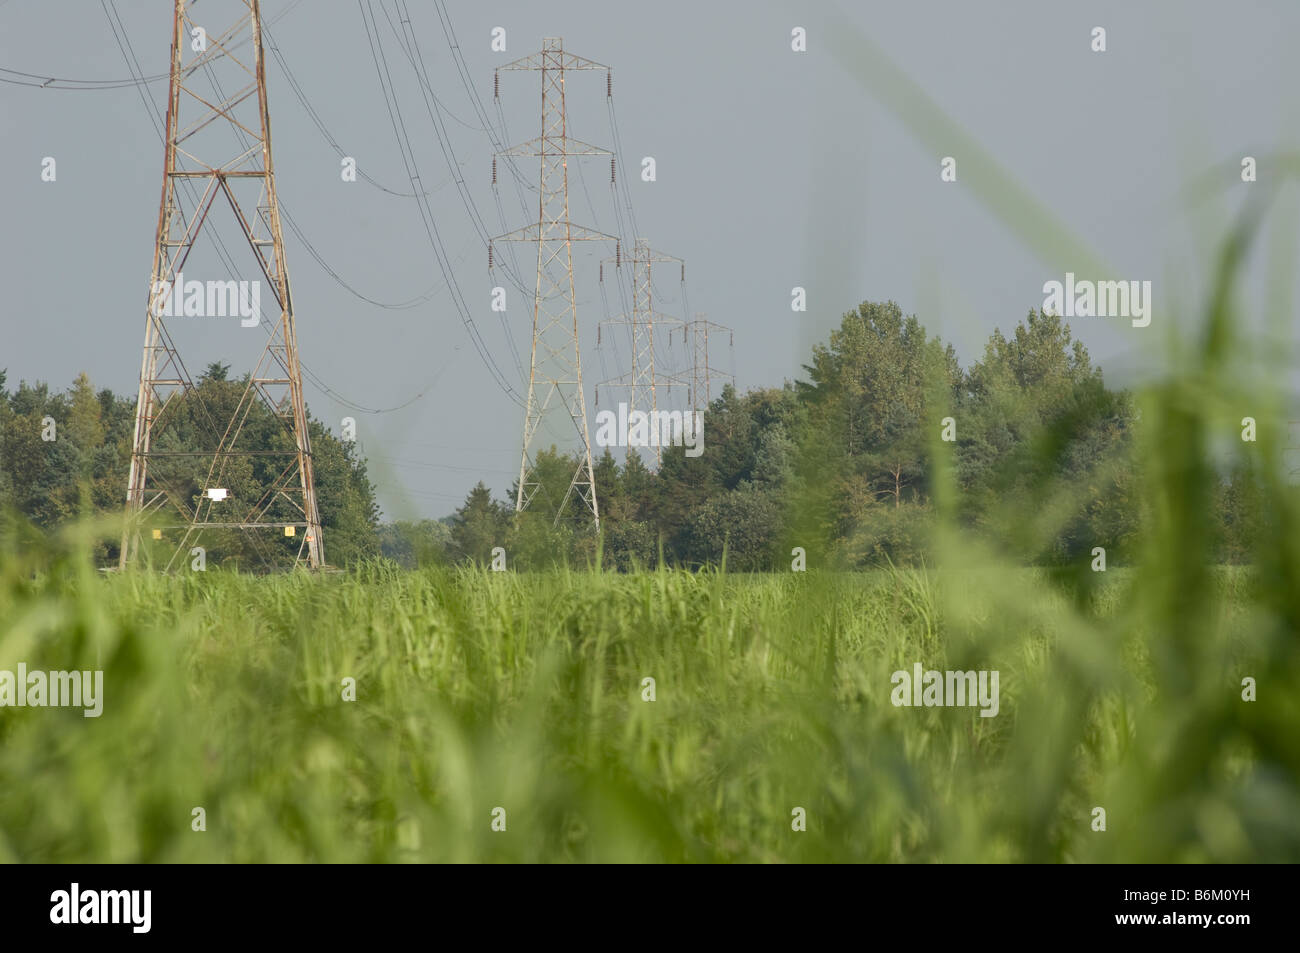 Electricity pylons towering field of miscanthus grass, grown for biofuel production - Stock Image